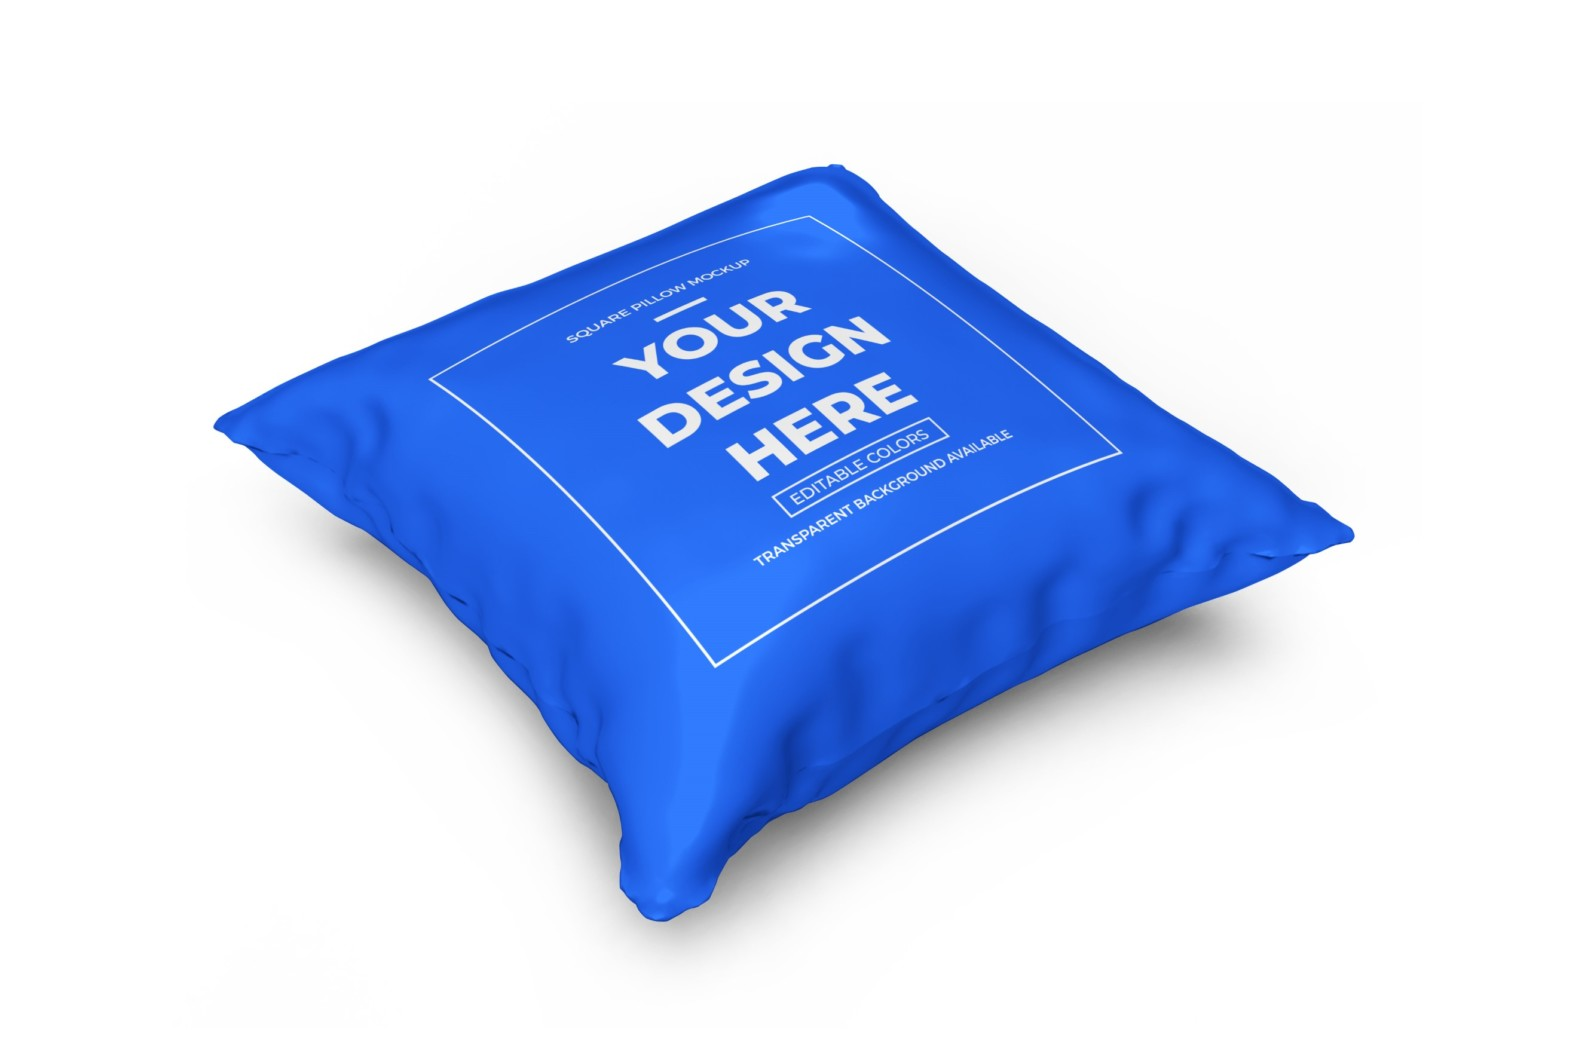 Square Pillow Mockup Template Bundle - 03 66 scaled -